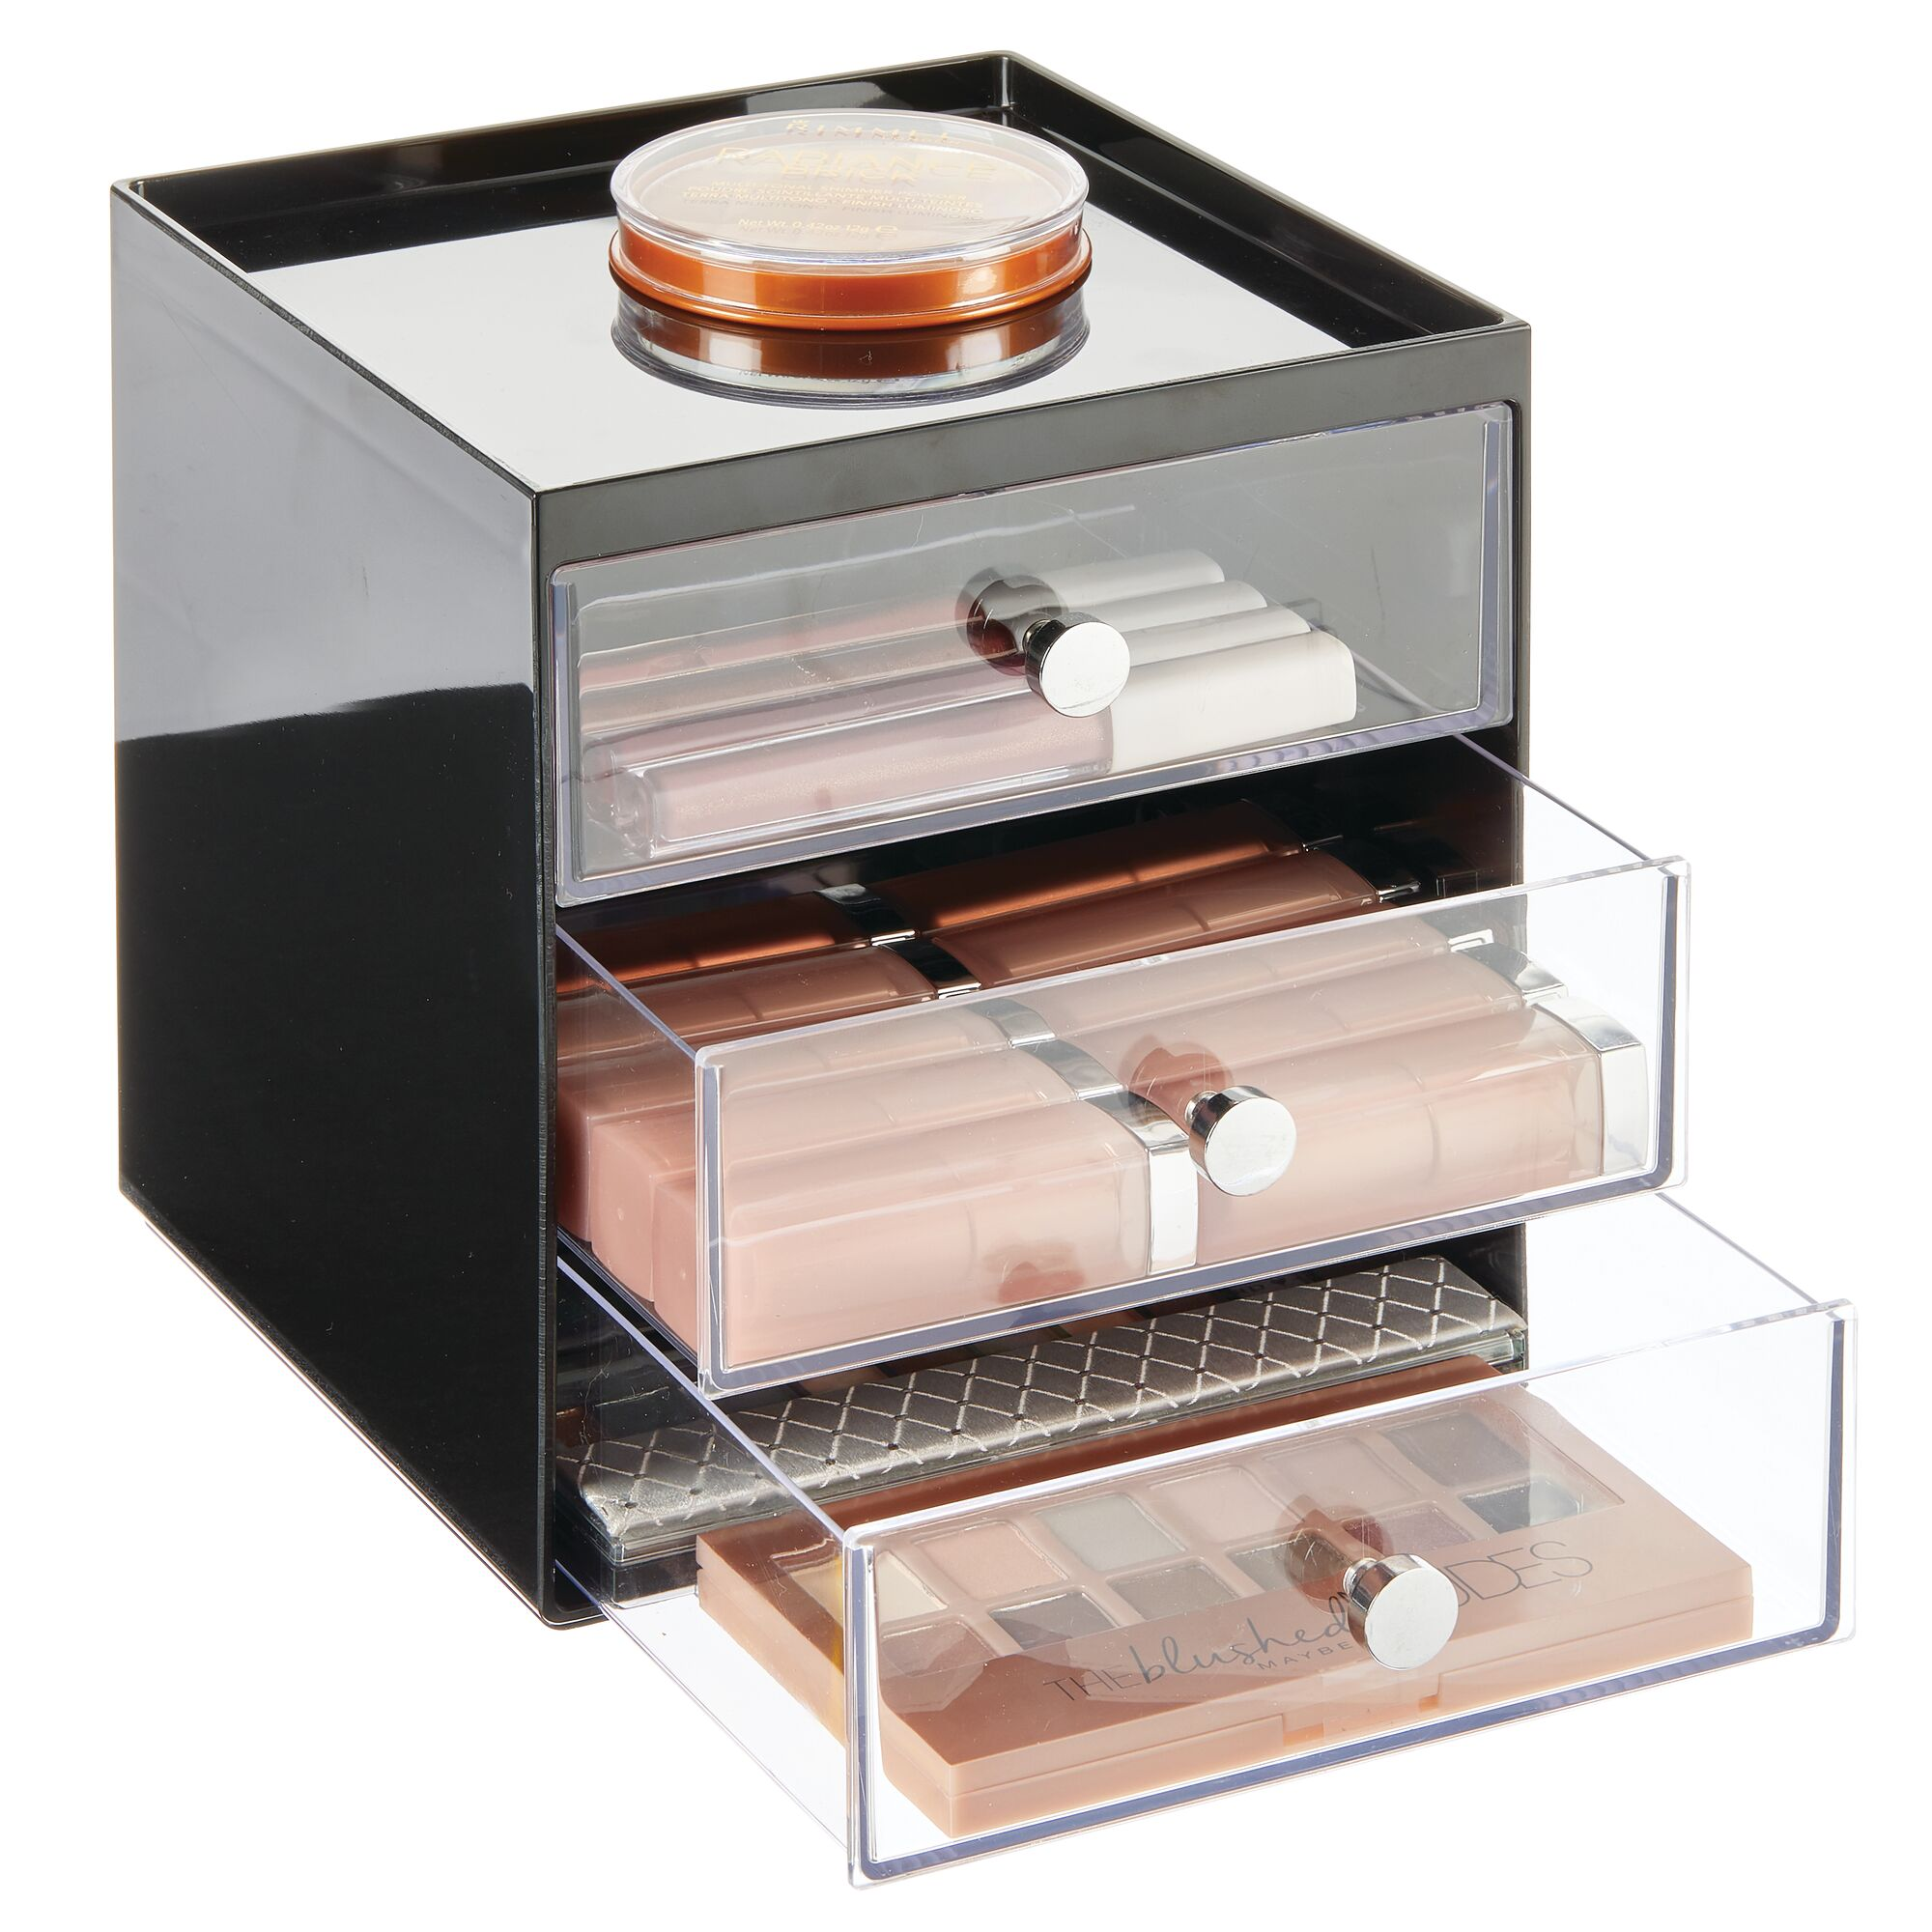 mDesign-Plastic-Makeup-Storage-Organizer-Cube-3-Drawers thumbnail 17